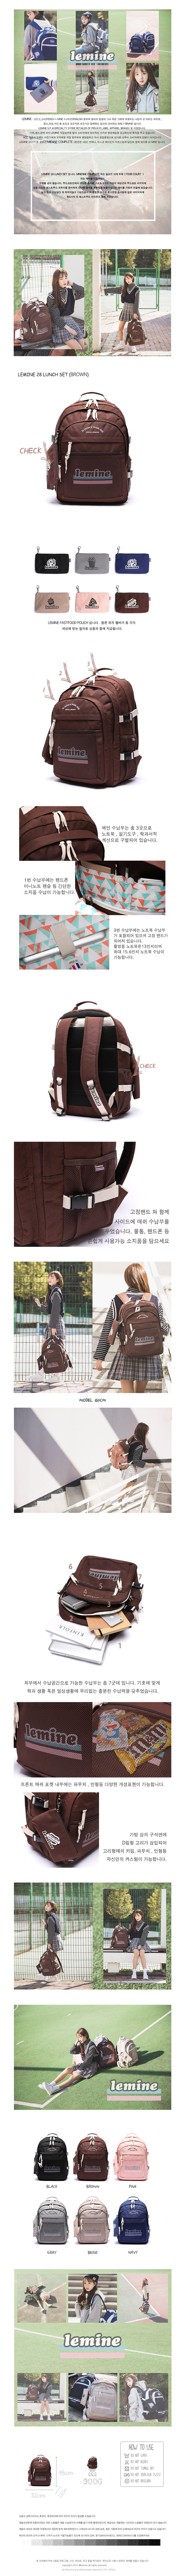 런치세트브라운LE28BROWN_LUNCHSET850.jpg